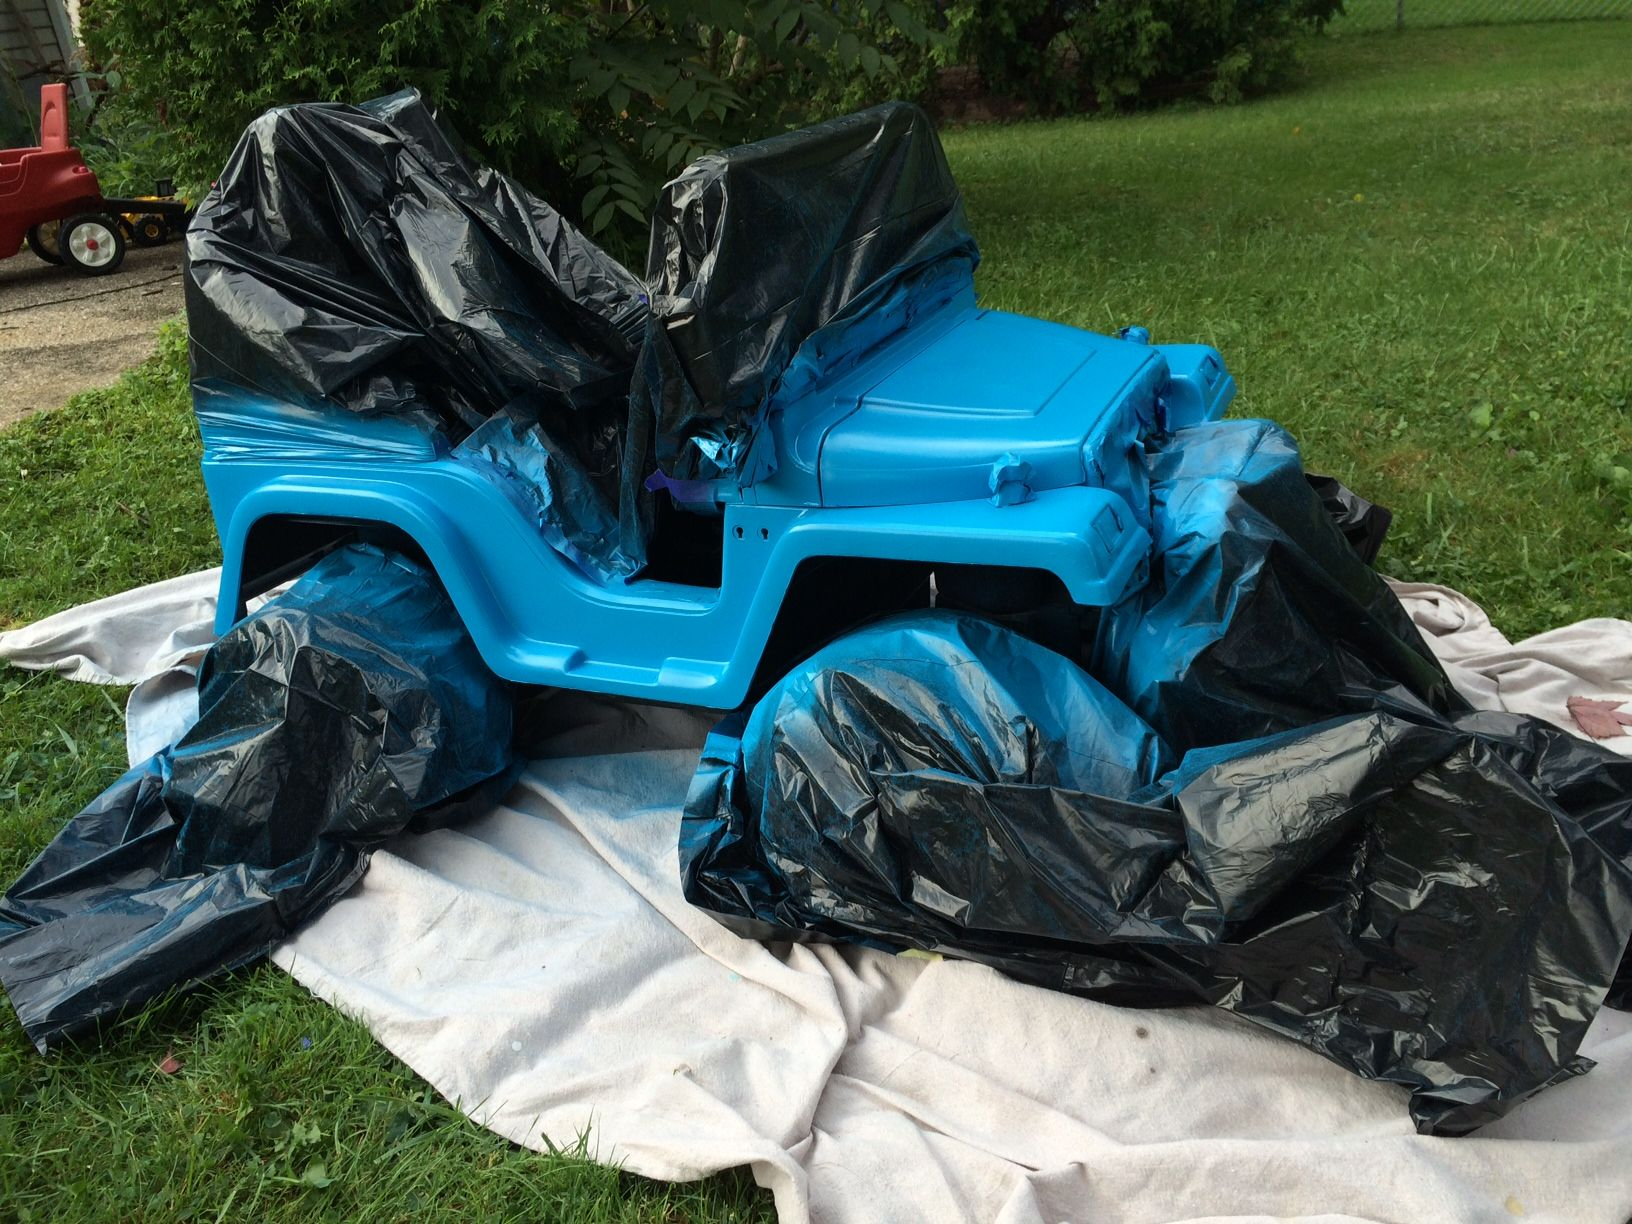 customizing our power wheels with spray paint